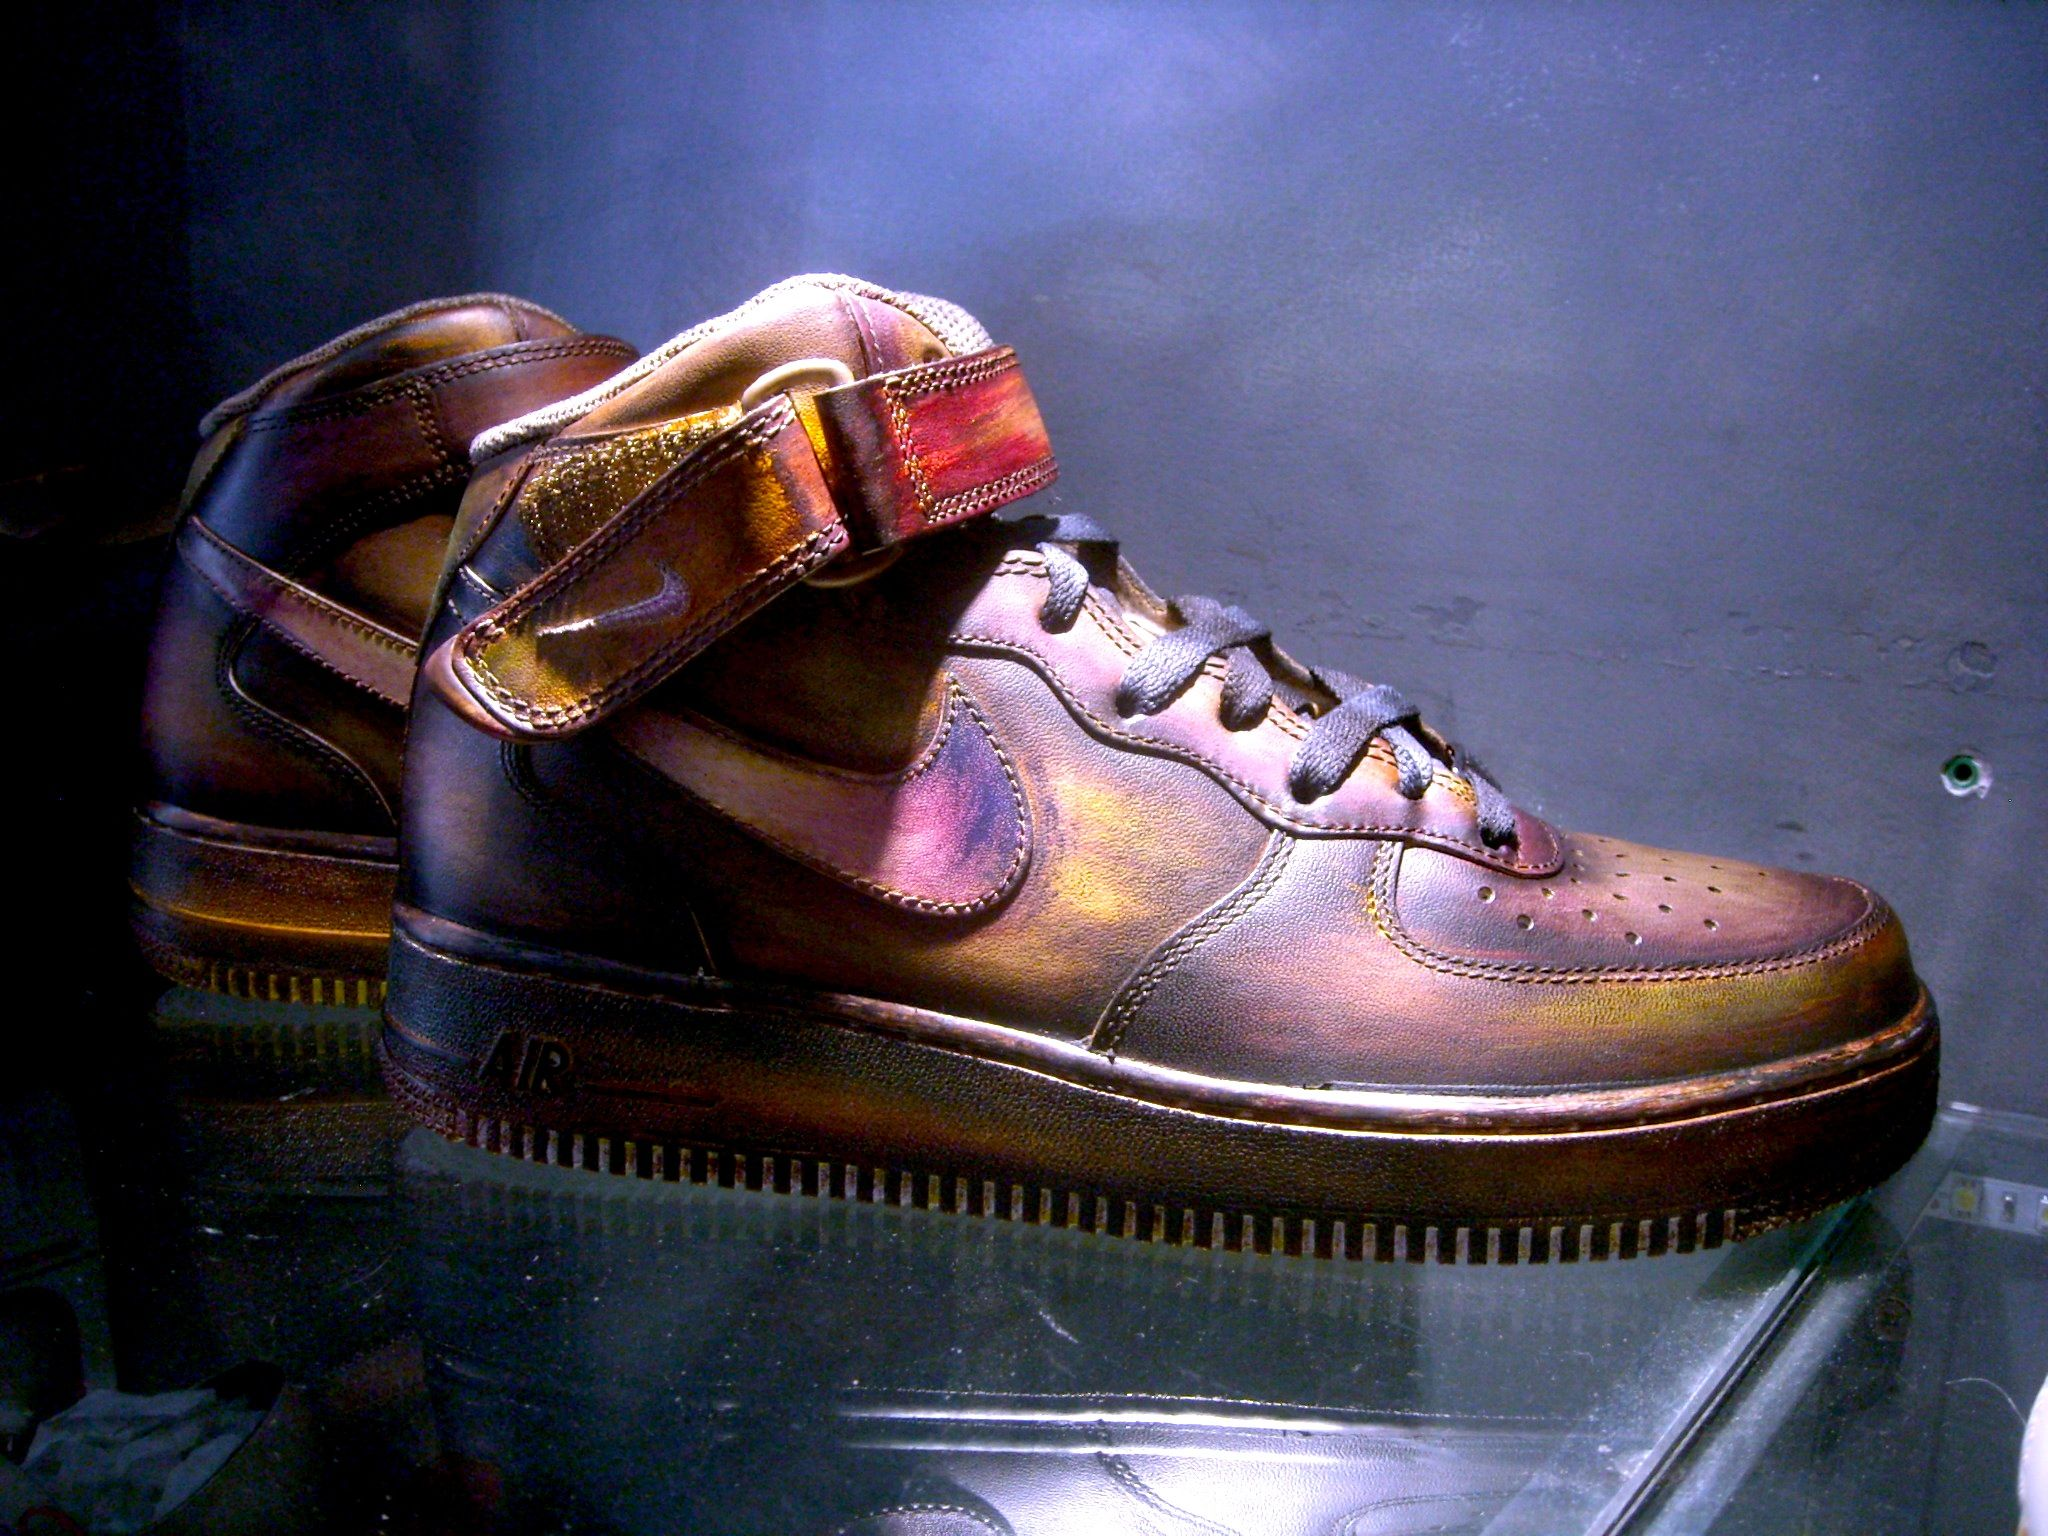 nike airforce 1 patina in 8 colors by paulus Bolten